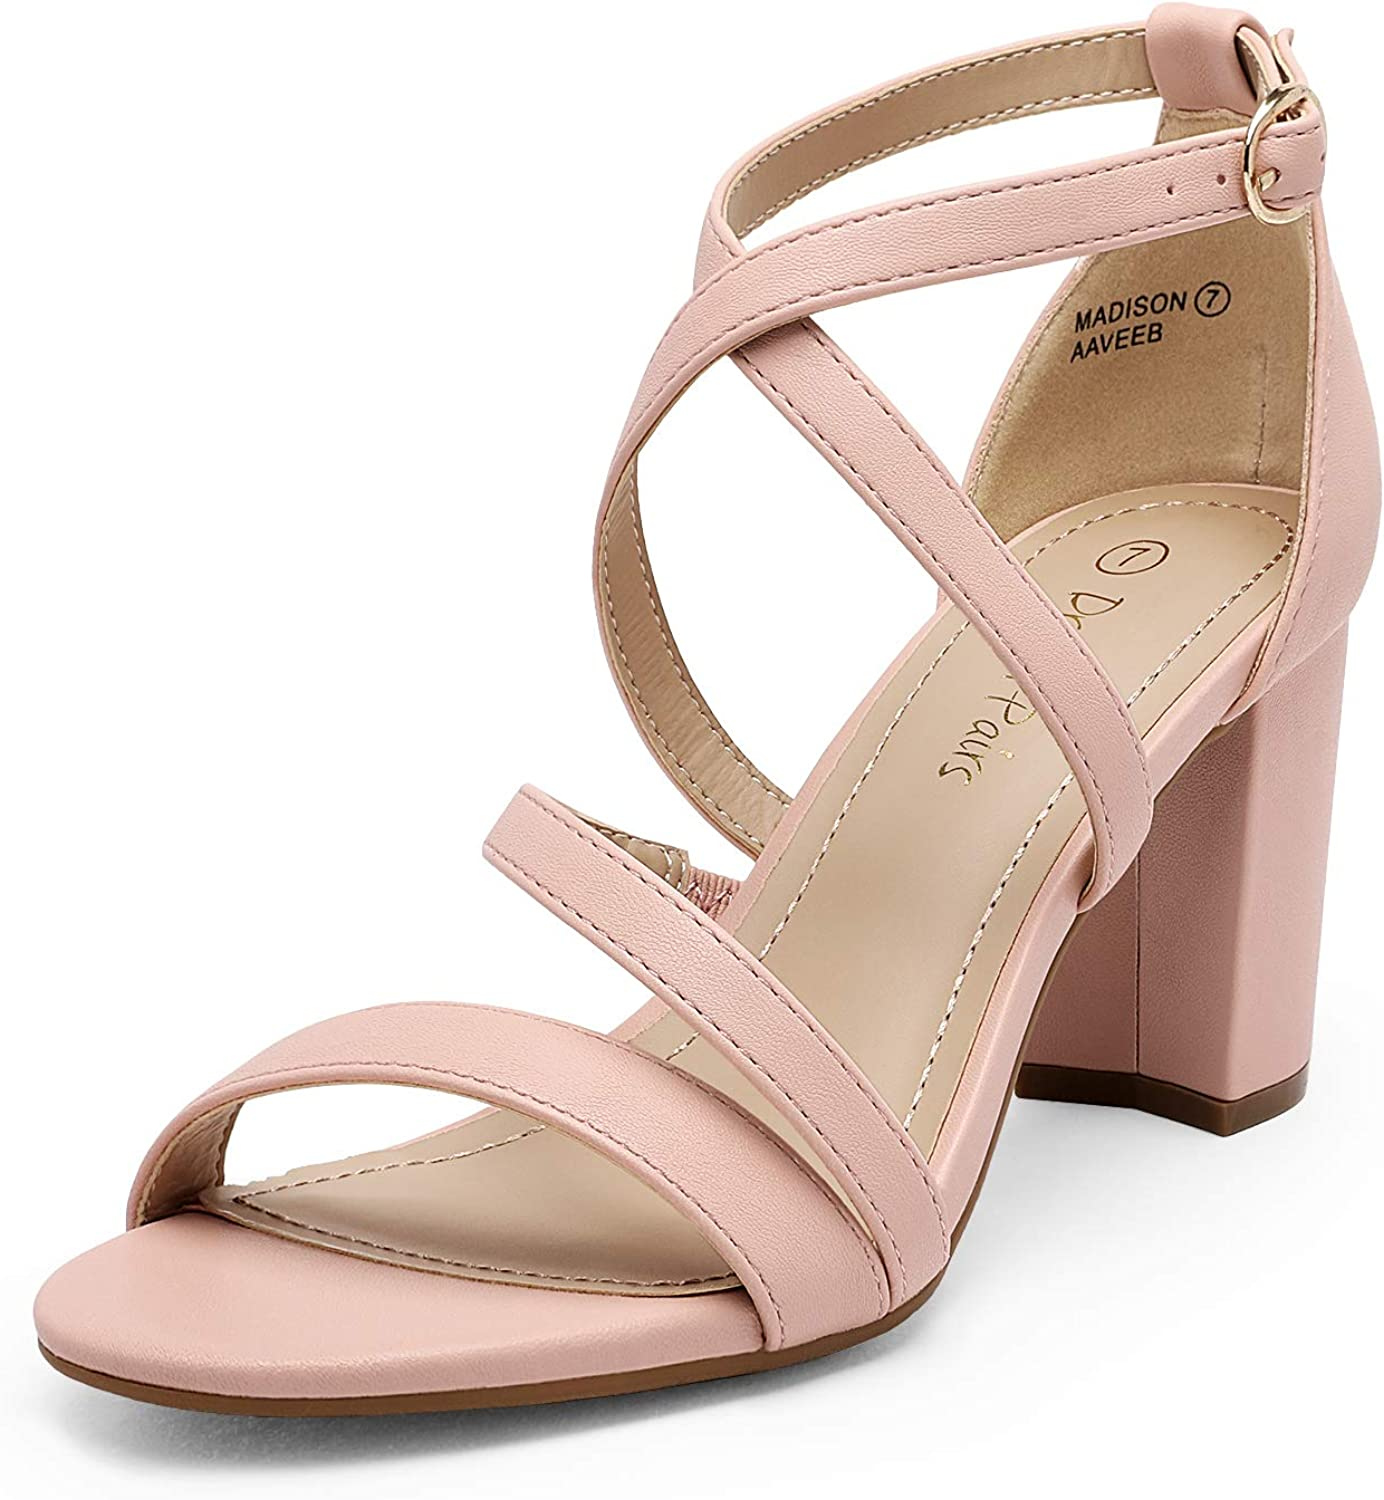 DREAM Large discharge sale PAIRS Women's Large-scale sale Ankle Strap Dress Sanda Low Pump Chunky Heel